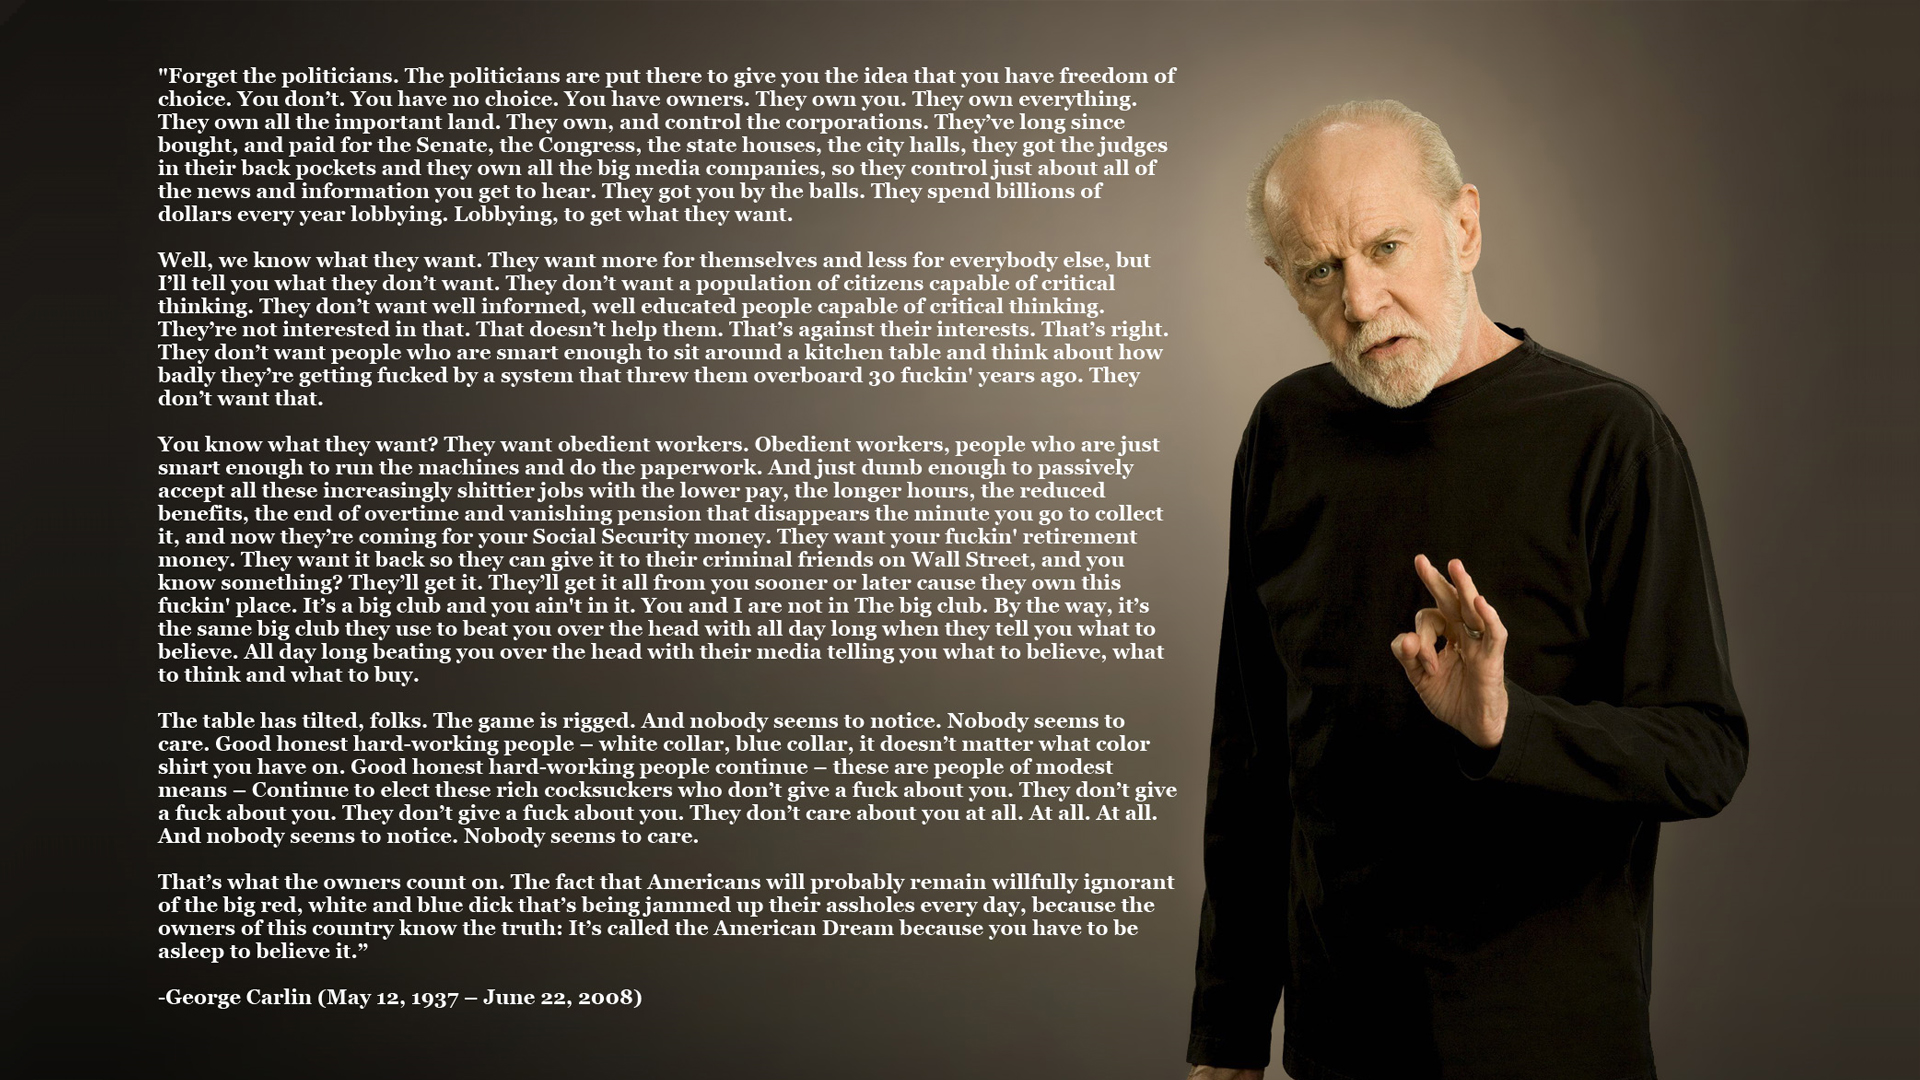 text Quotes george carlin HD Wallpaper